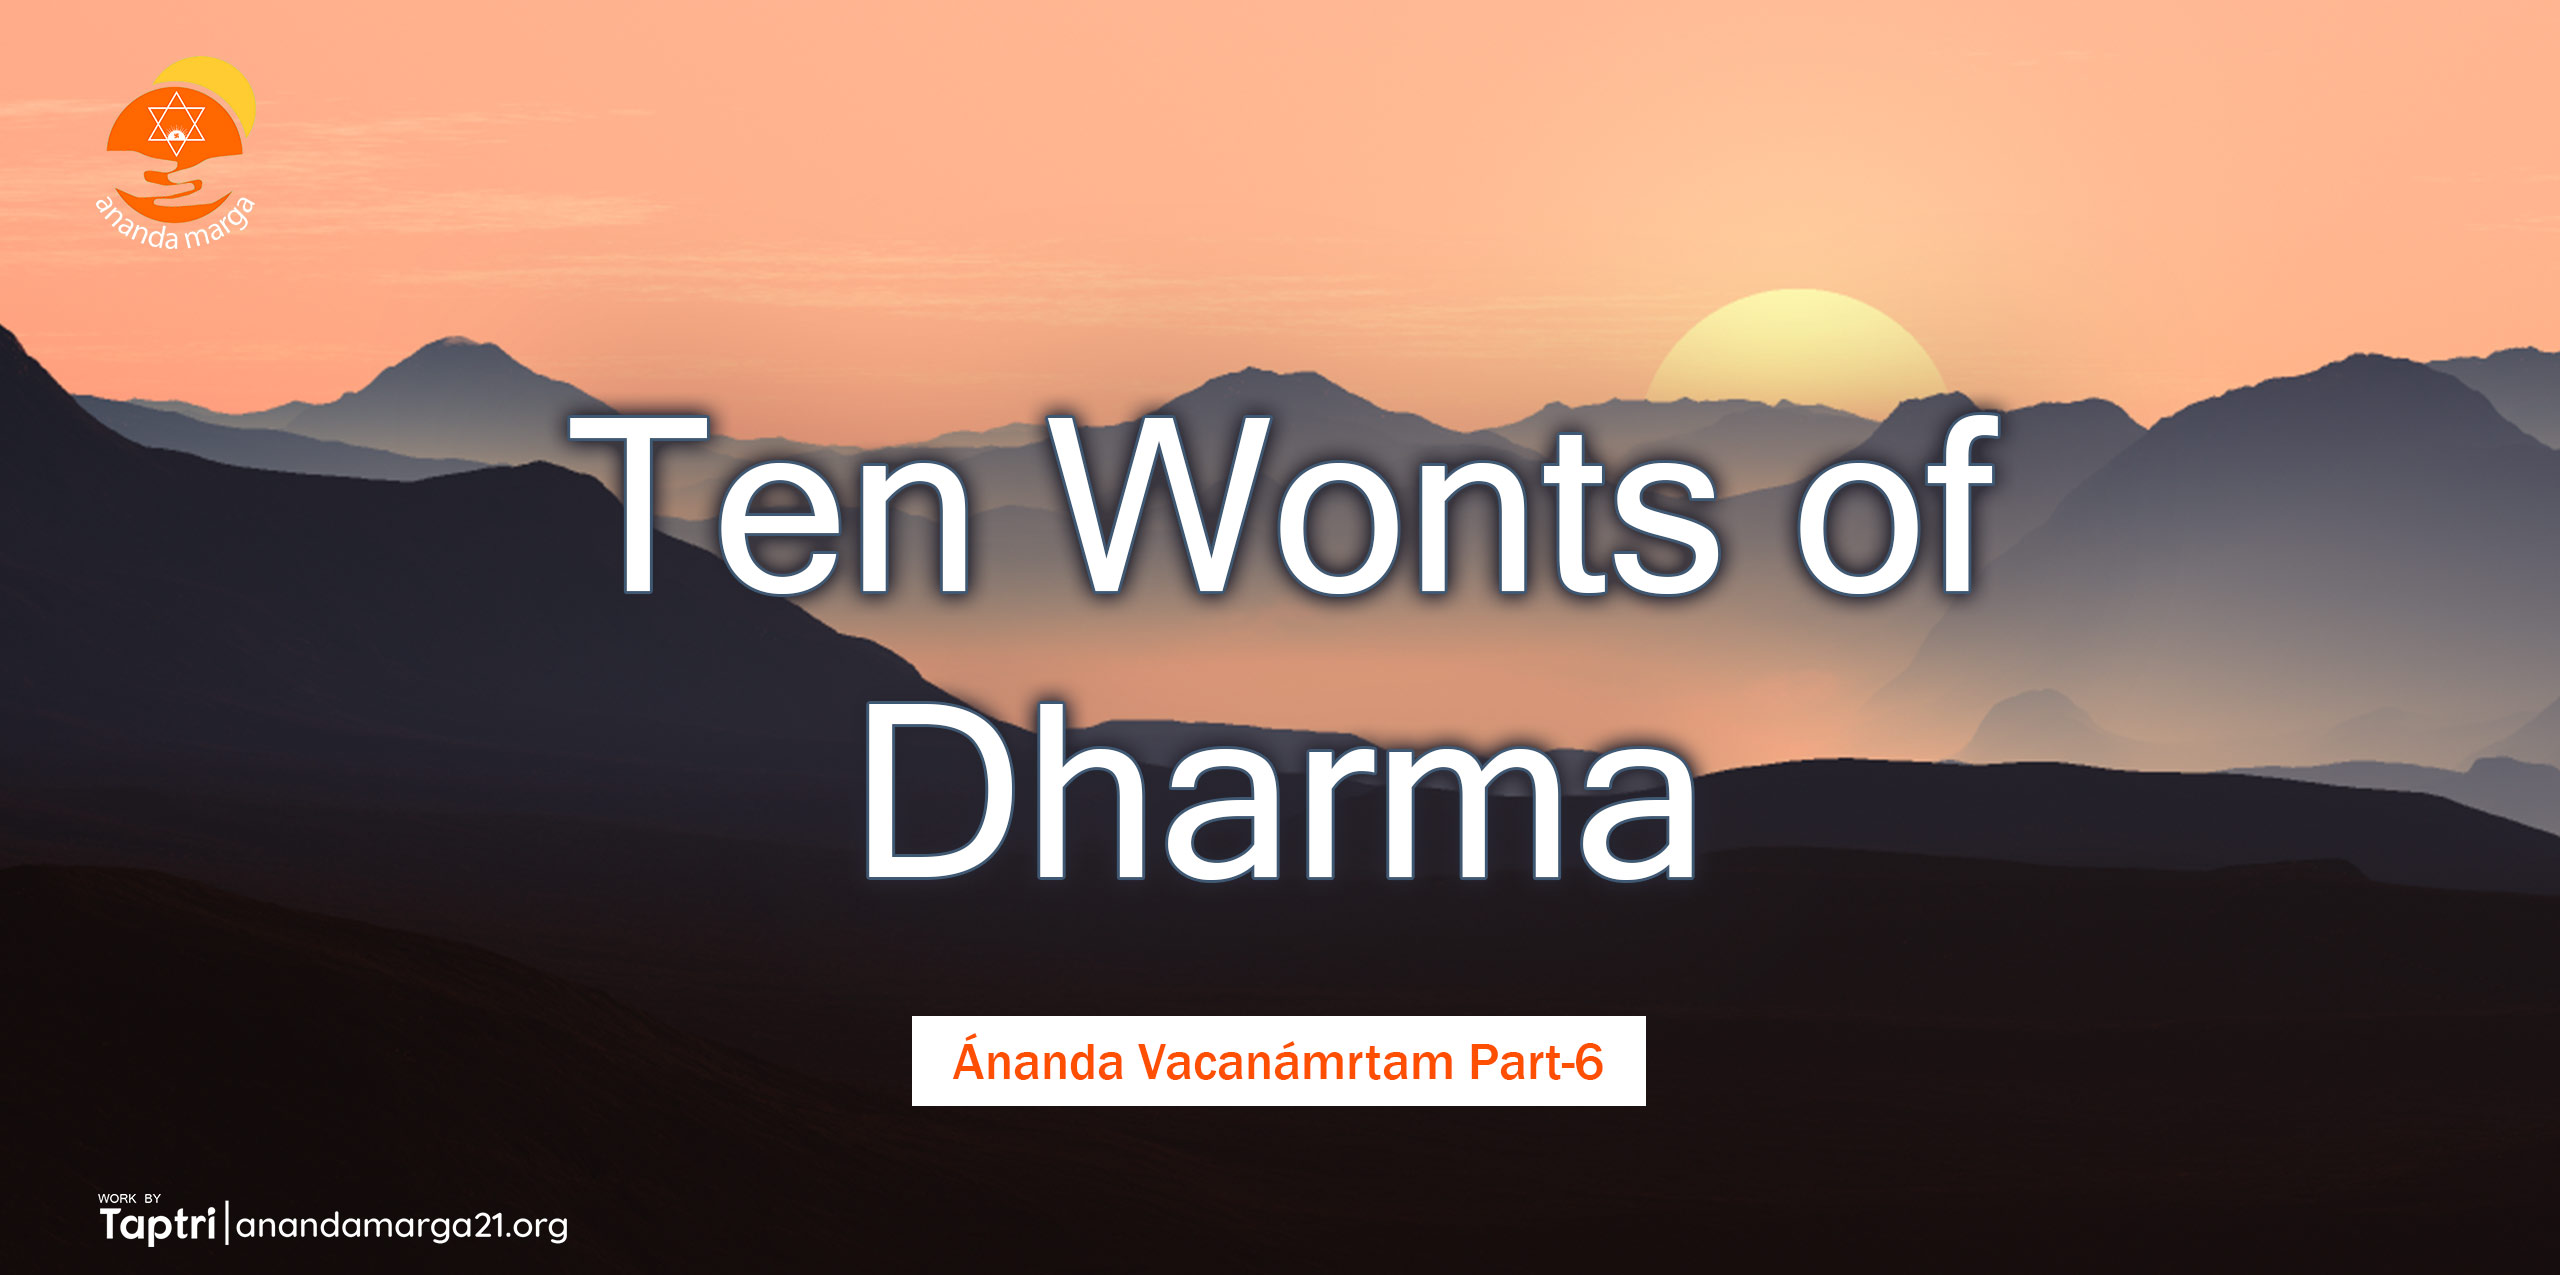 Ten-Wonts-of-Dharma-Ananda-Vacanamrtm-06-anandamarga